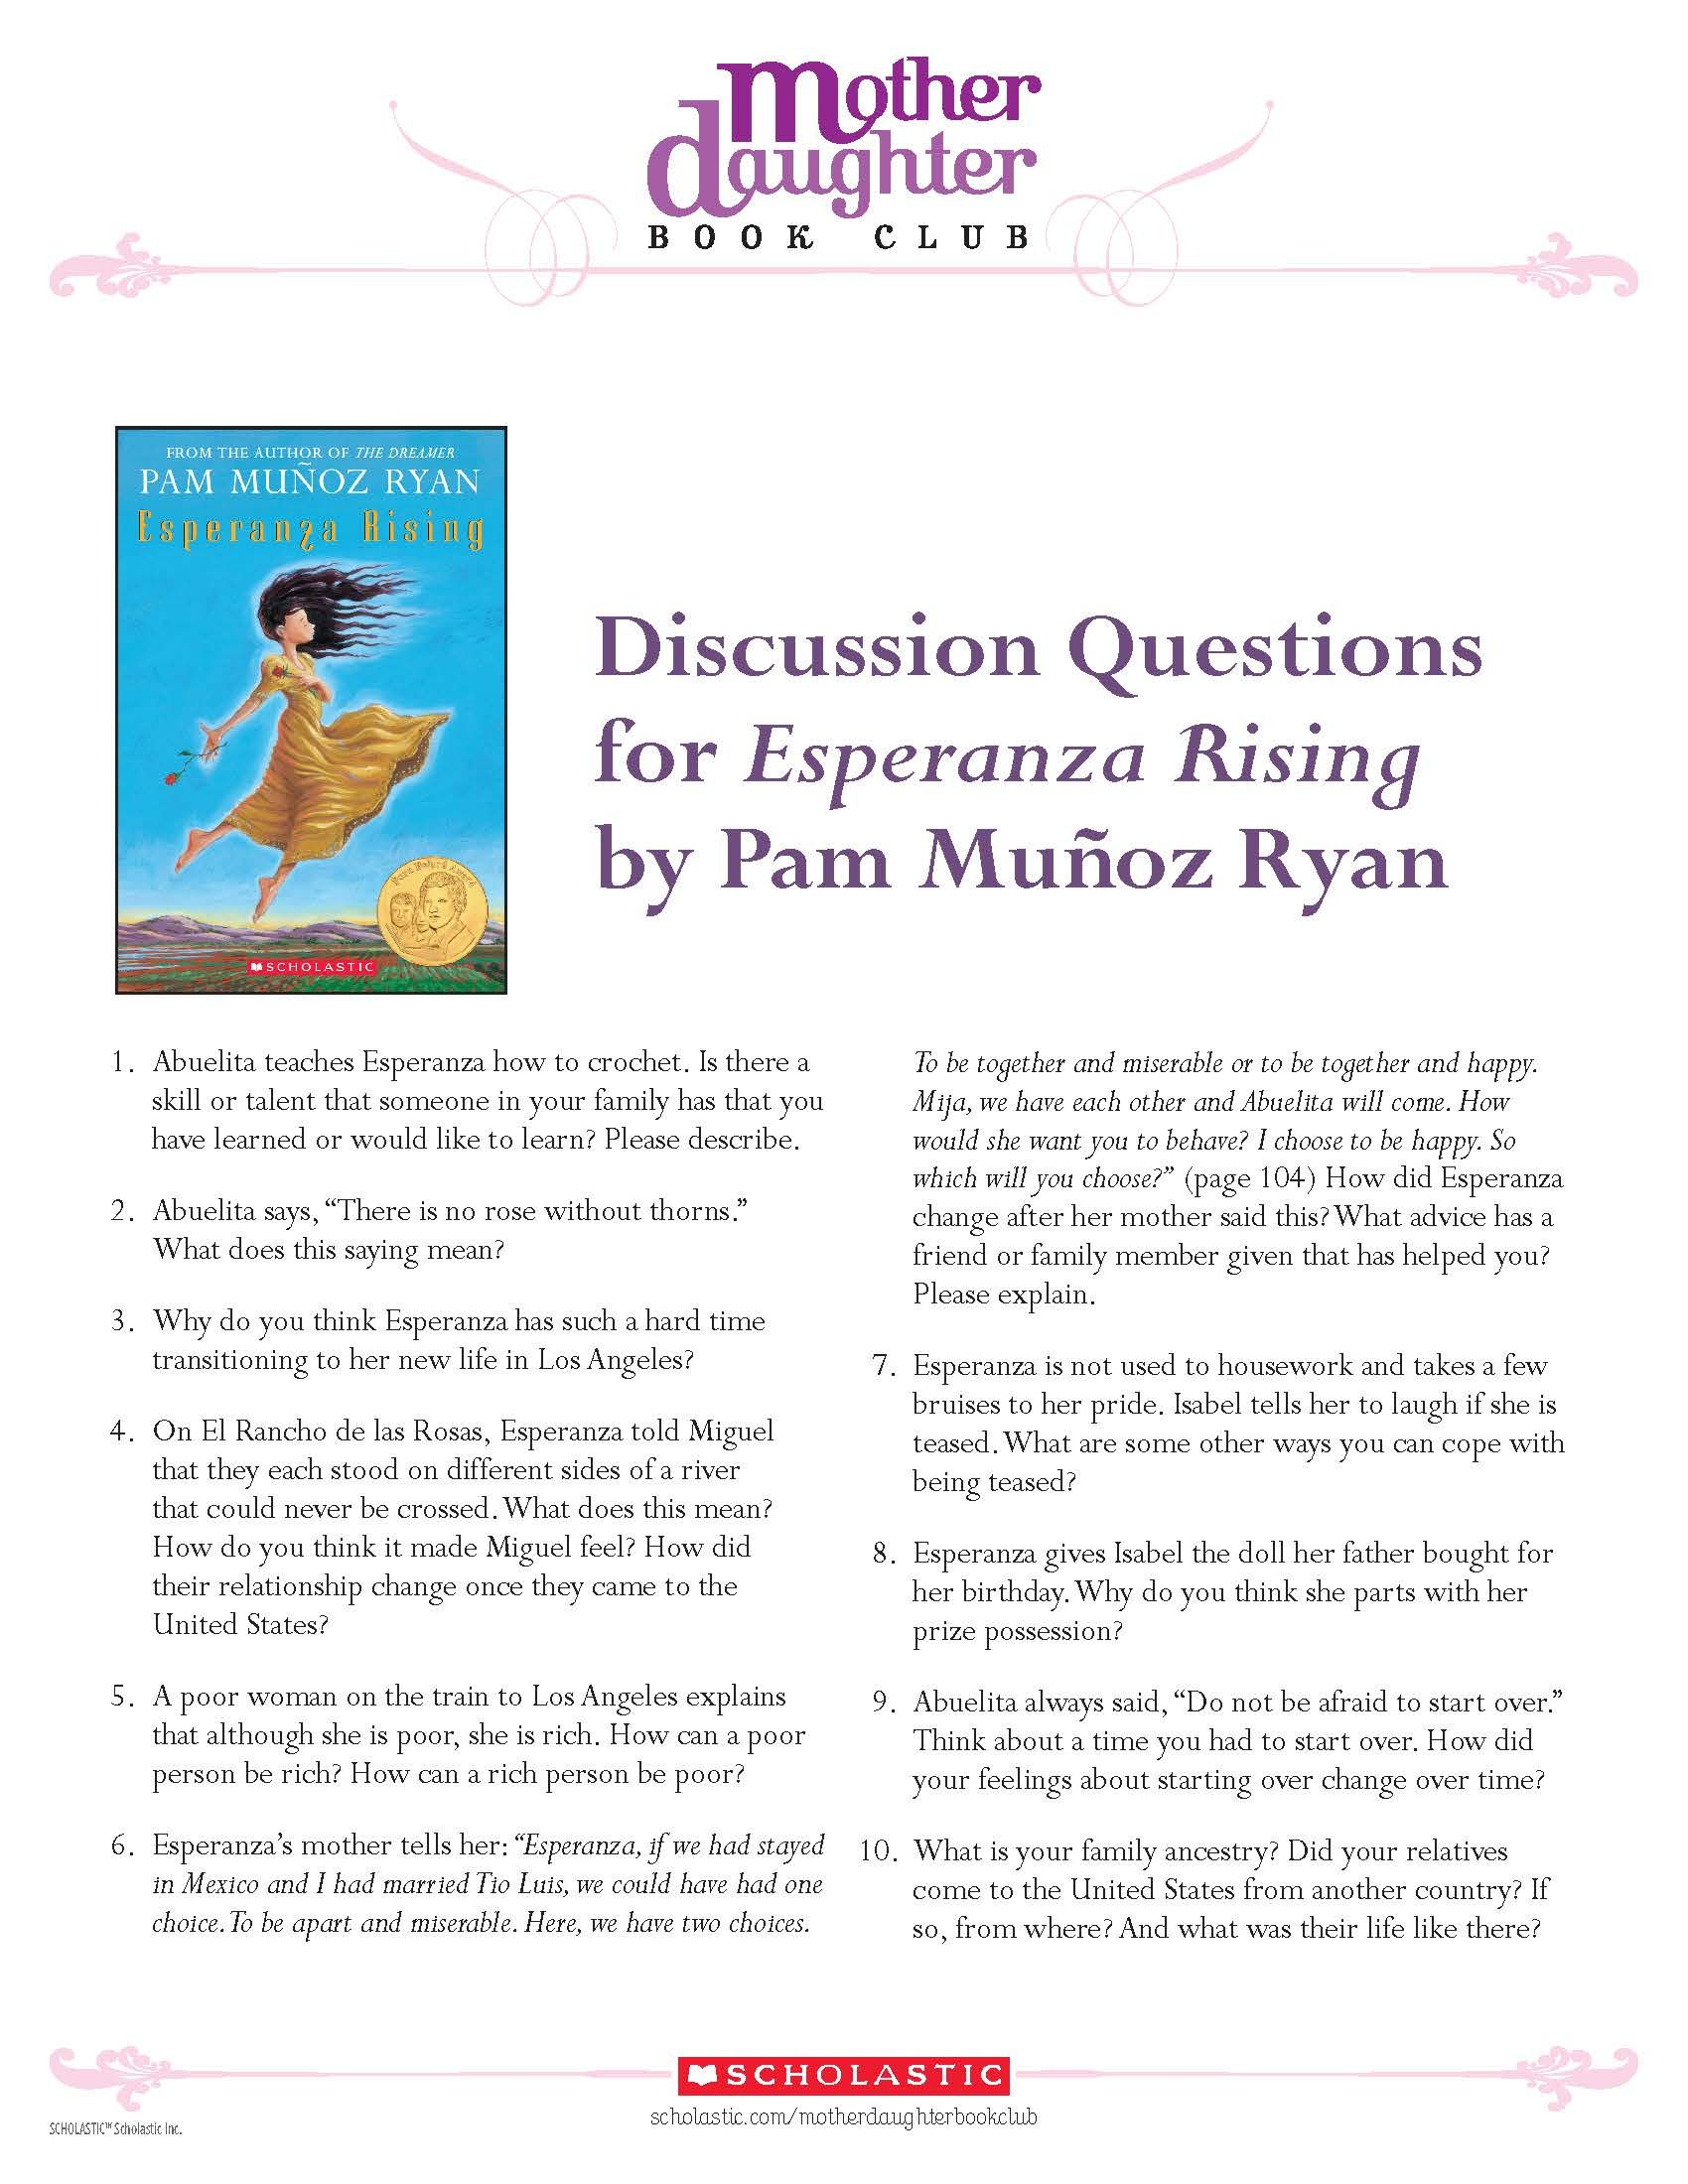 Discussion Questions For Esperanza Rising By Pam Munoz